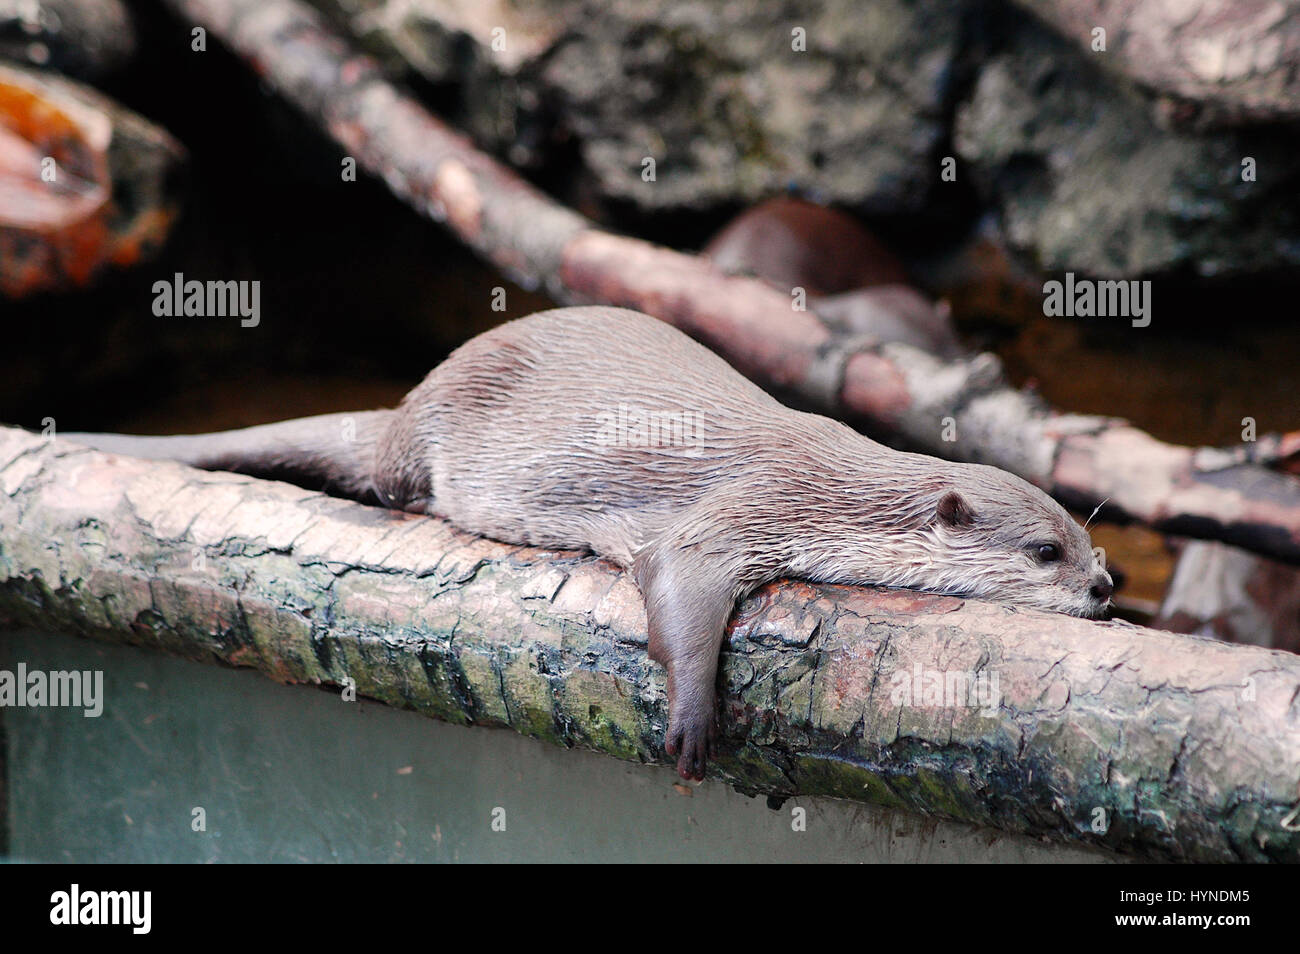 Otters at The New Forest Wildlife Park, Hampshire, England Stock Photo